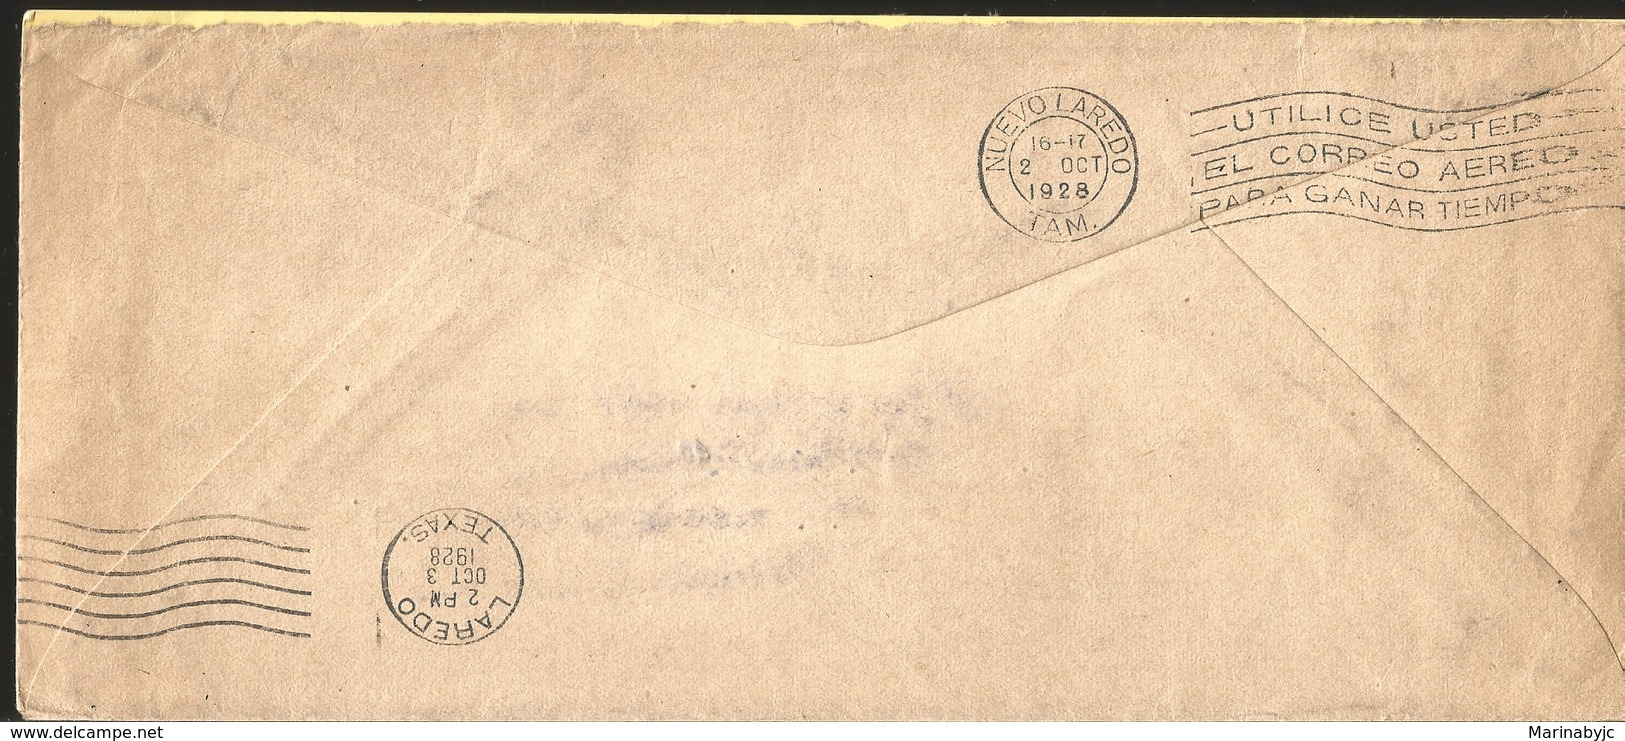 J) 1928 MEXICO, FIRST FLIGHT INAUGURAL, SECRETARIAT OF FINANCE AND PUBLIC CREDIT, EAGLE CANCELLATION, MULTIPLE STAMPS, A - Mexico